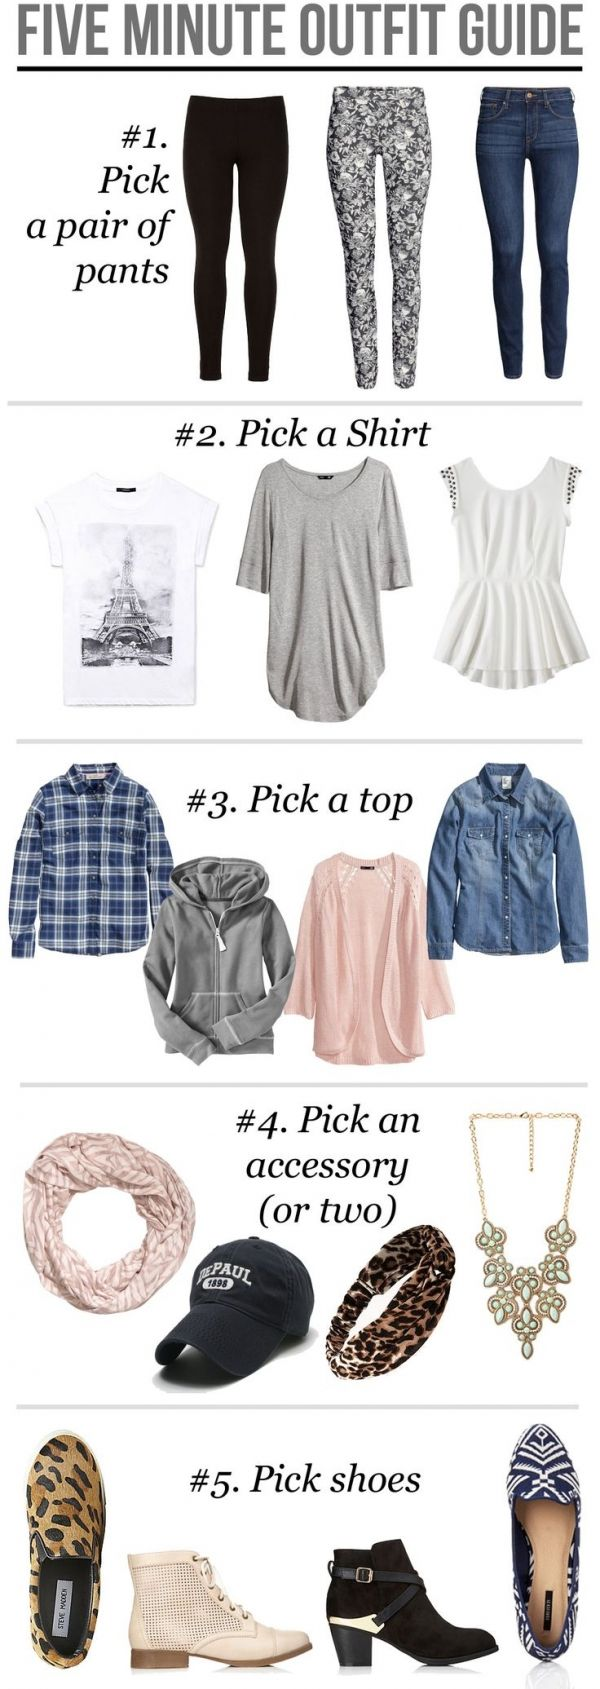 Look Cute for Class with These College Outfit Ideas ... #collegeoutfits